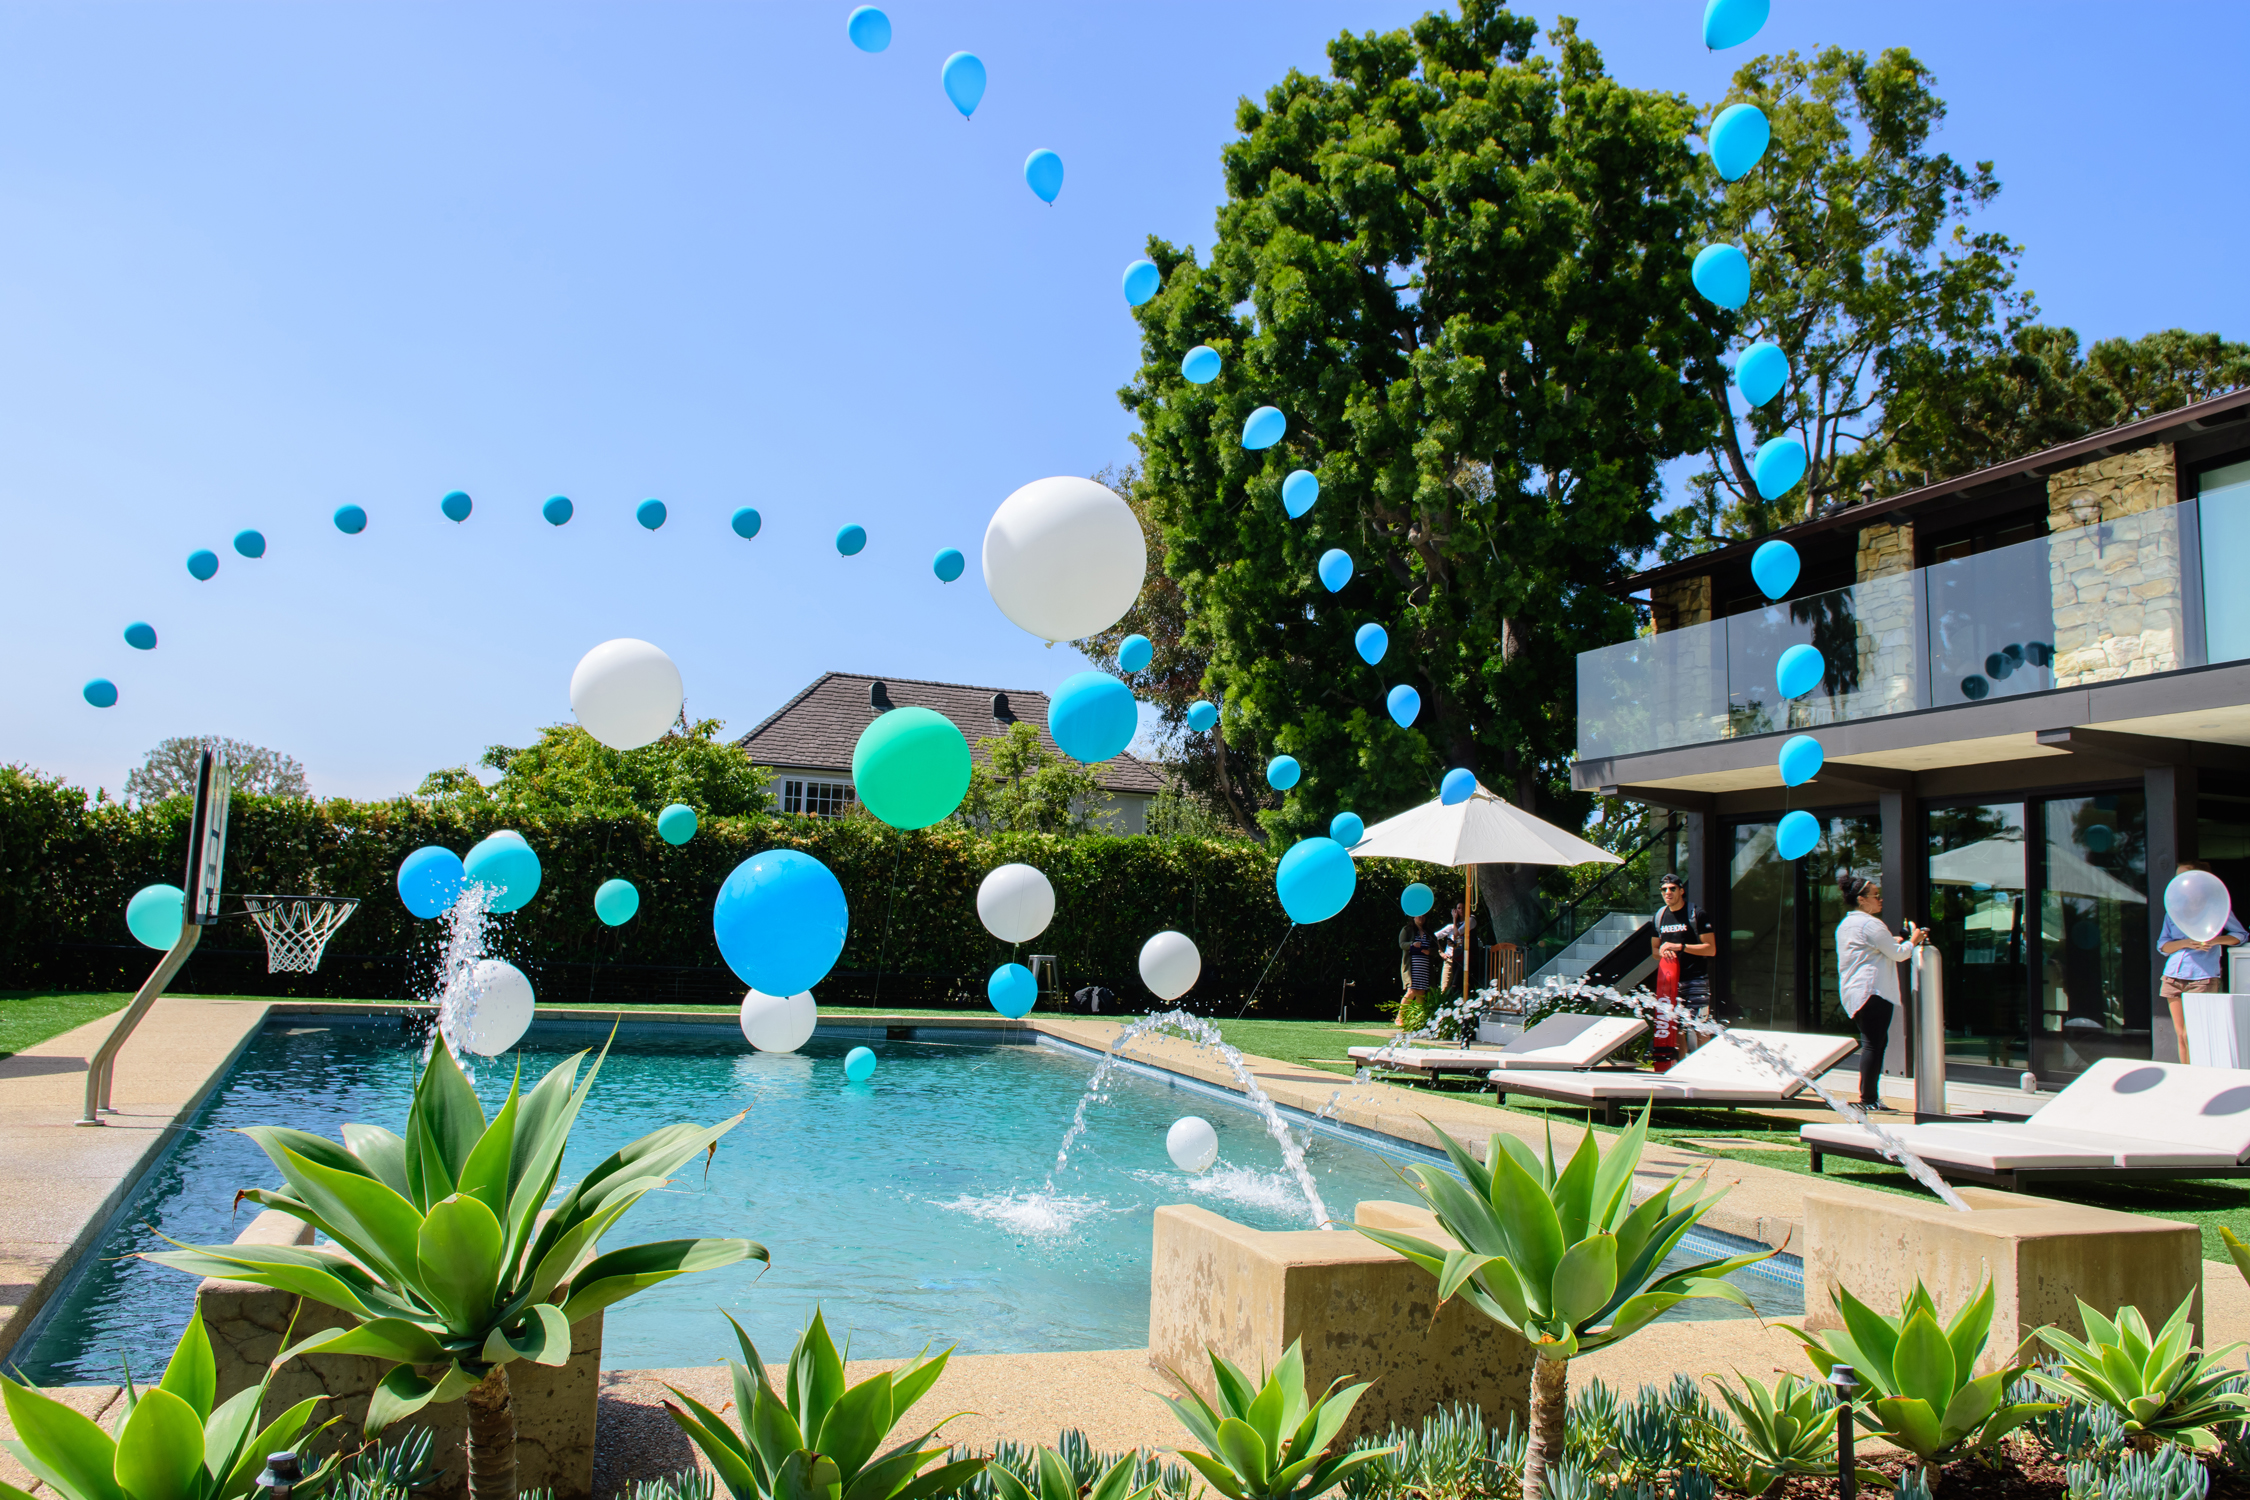 tarynco-party-event-balloons-pool-decor.jpg